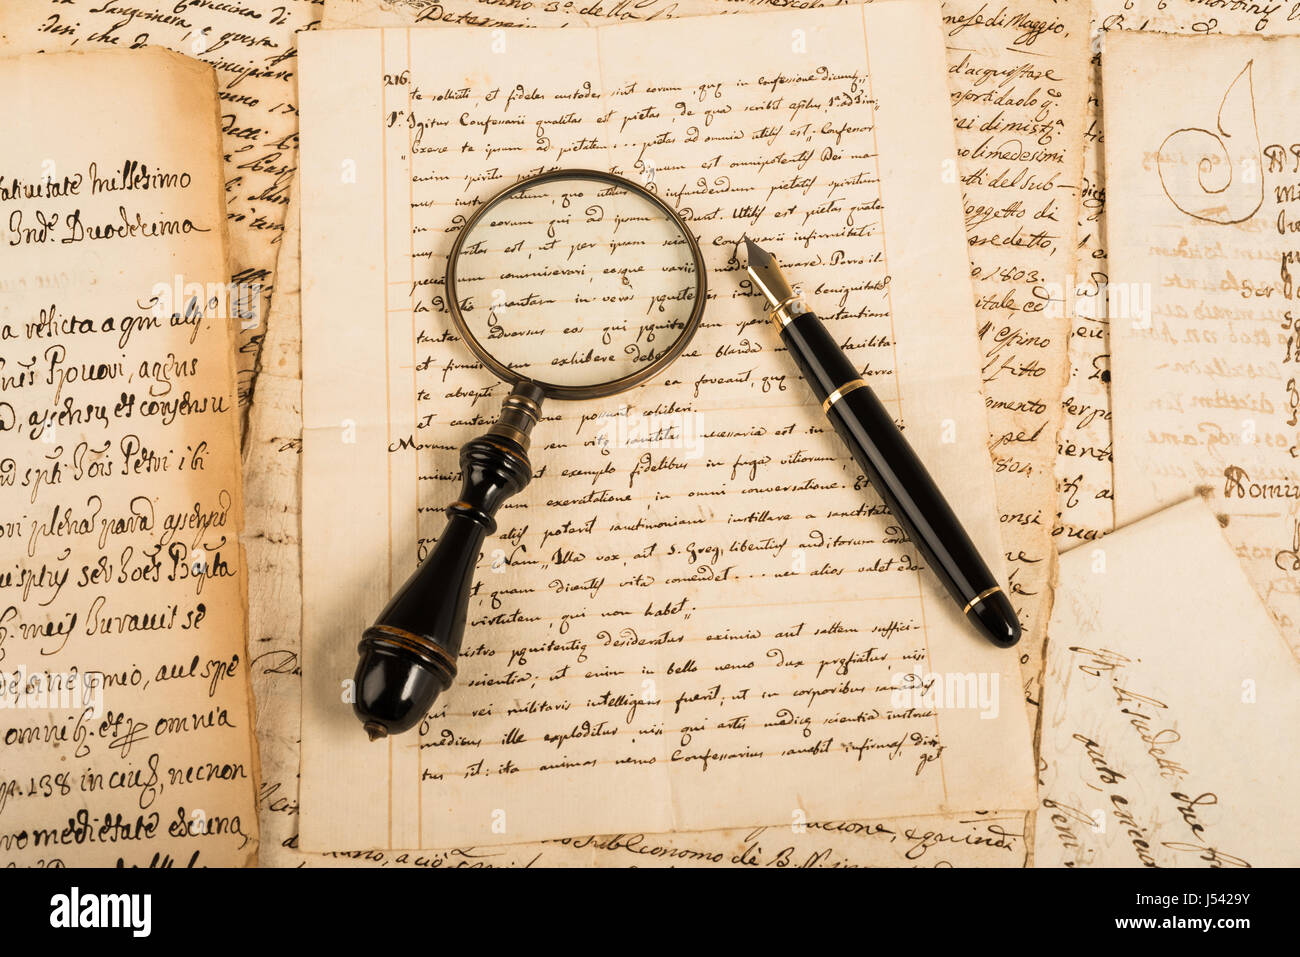 Fountain pen and magnifying glass on letter - Stock Image